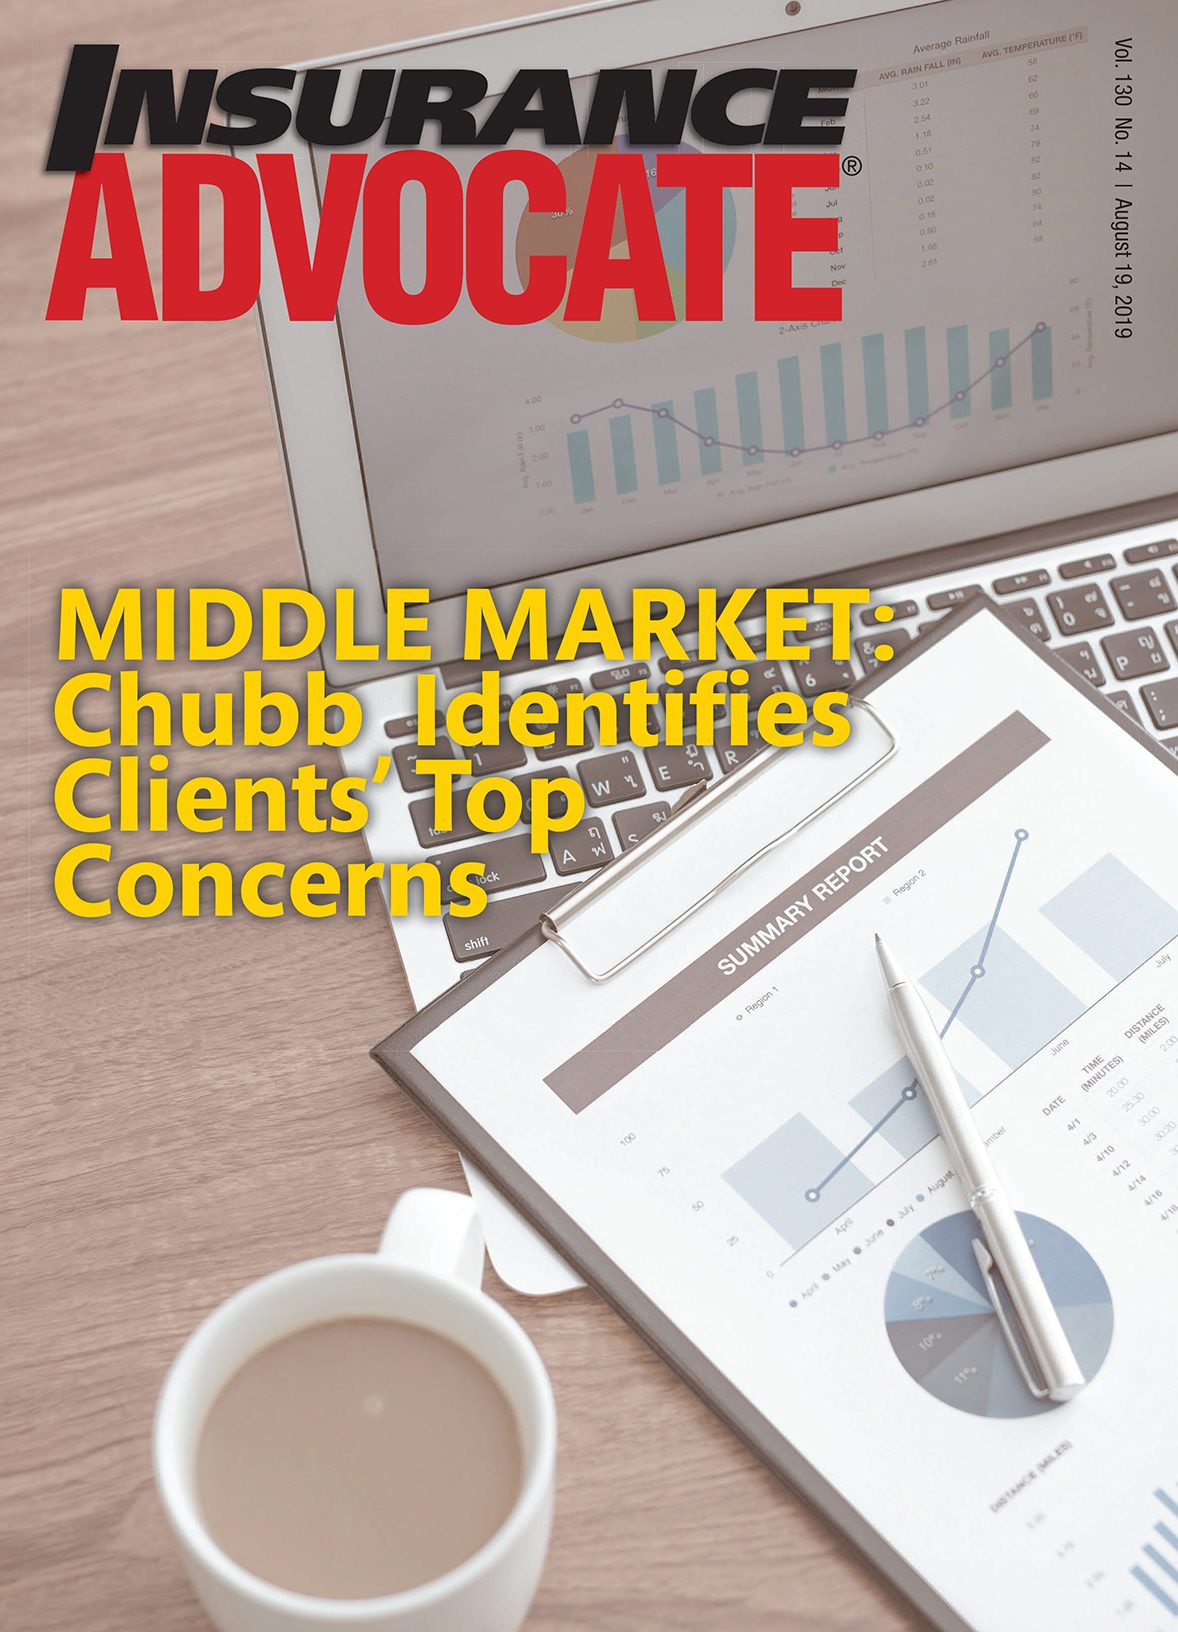 The Magazine | Insurance Advocate